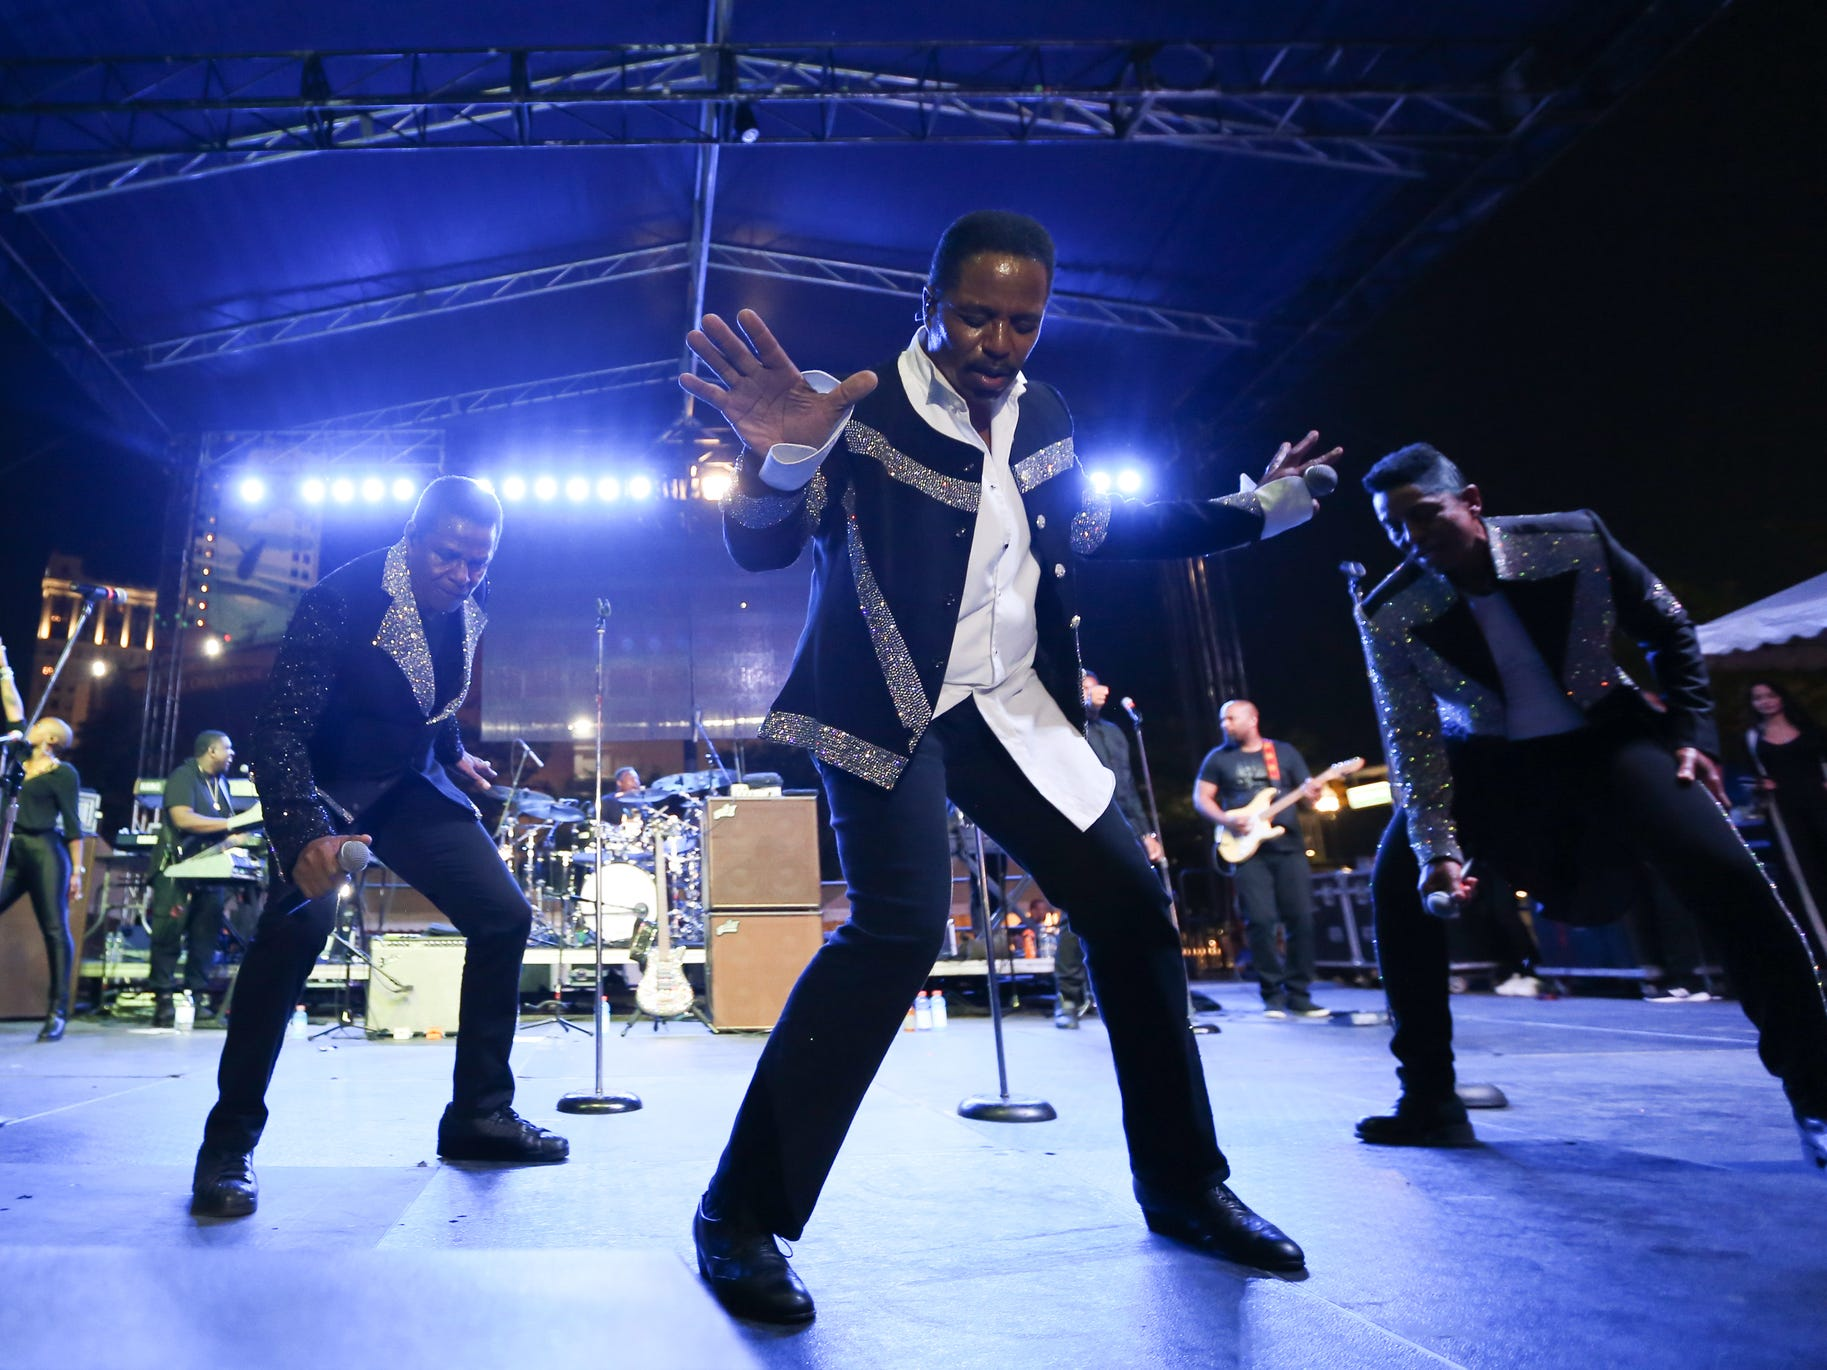 The Jacksons perform during Detroit Music Weekend in Detroit on Saturday, June 16, 2018.